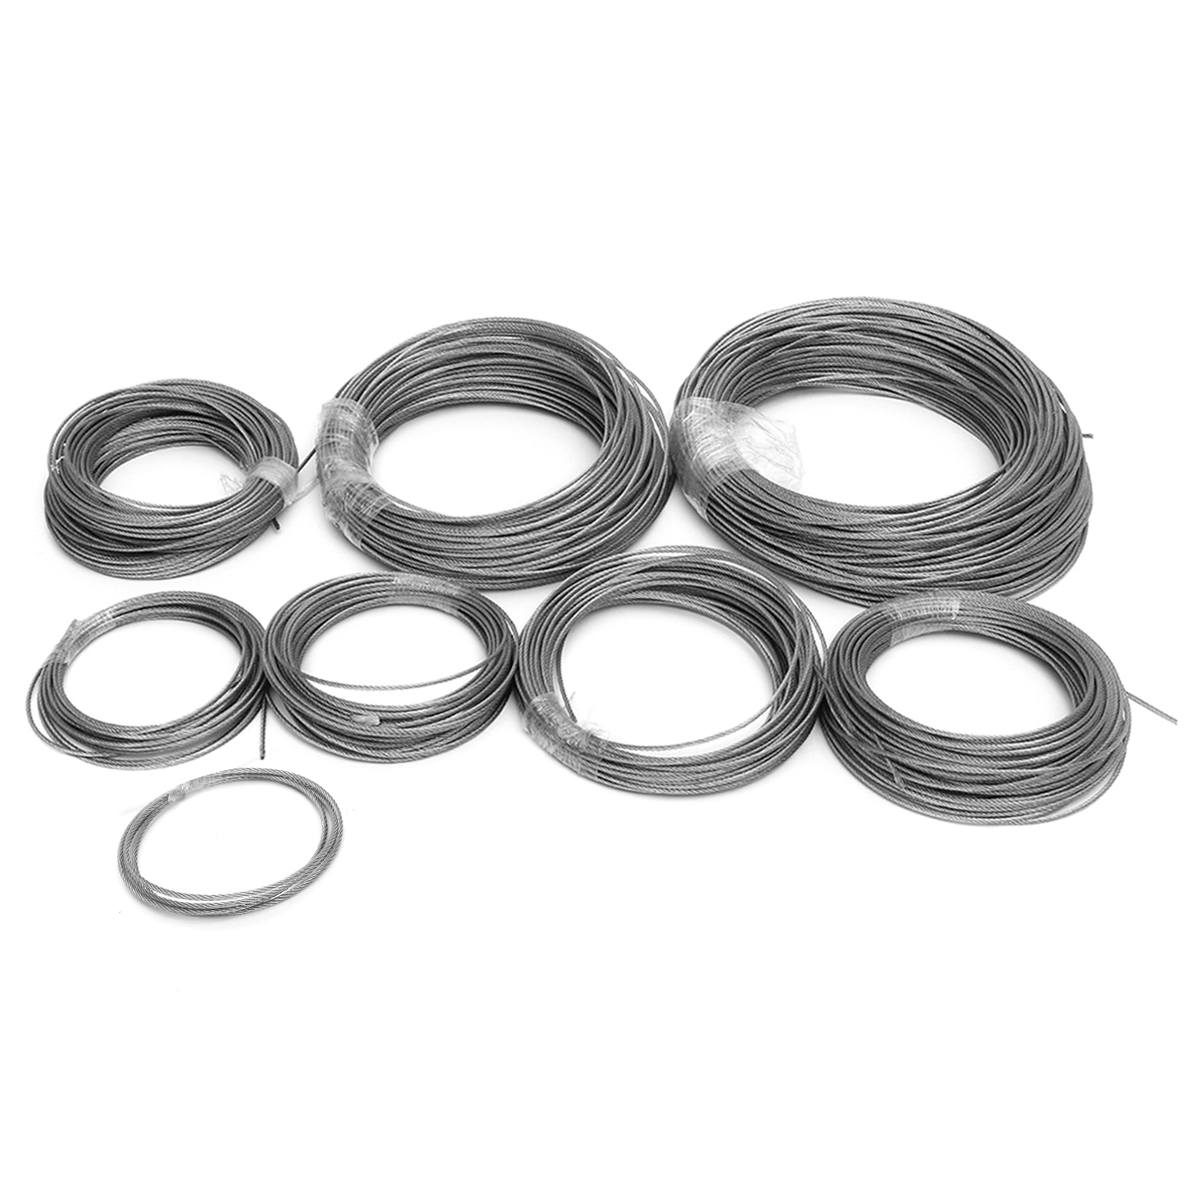 1-100M Stainless Steel Wire Rope Tensile Diameter 1mm Structure Cable Fishing Lifting Cable Clothesline